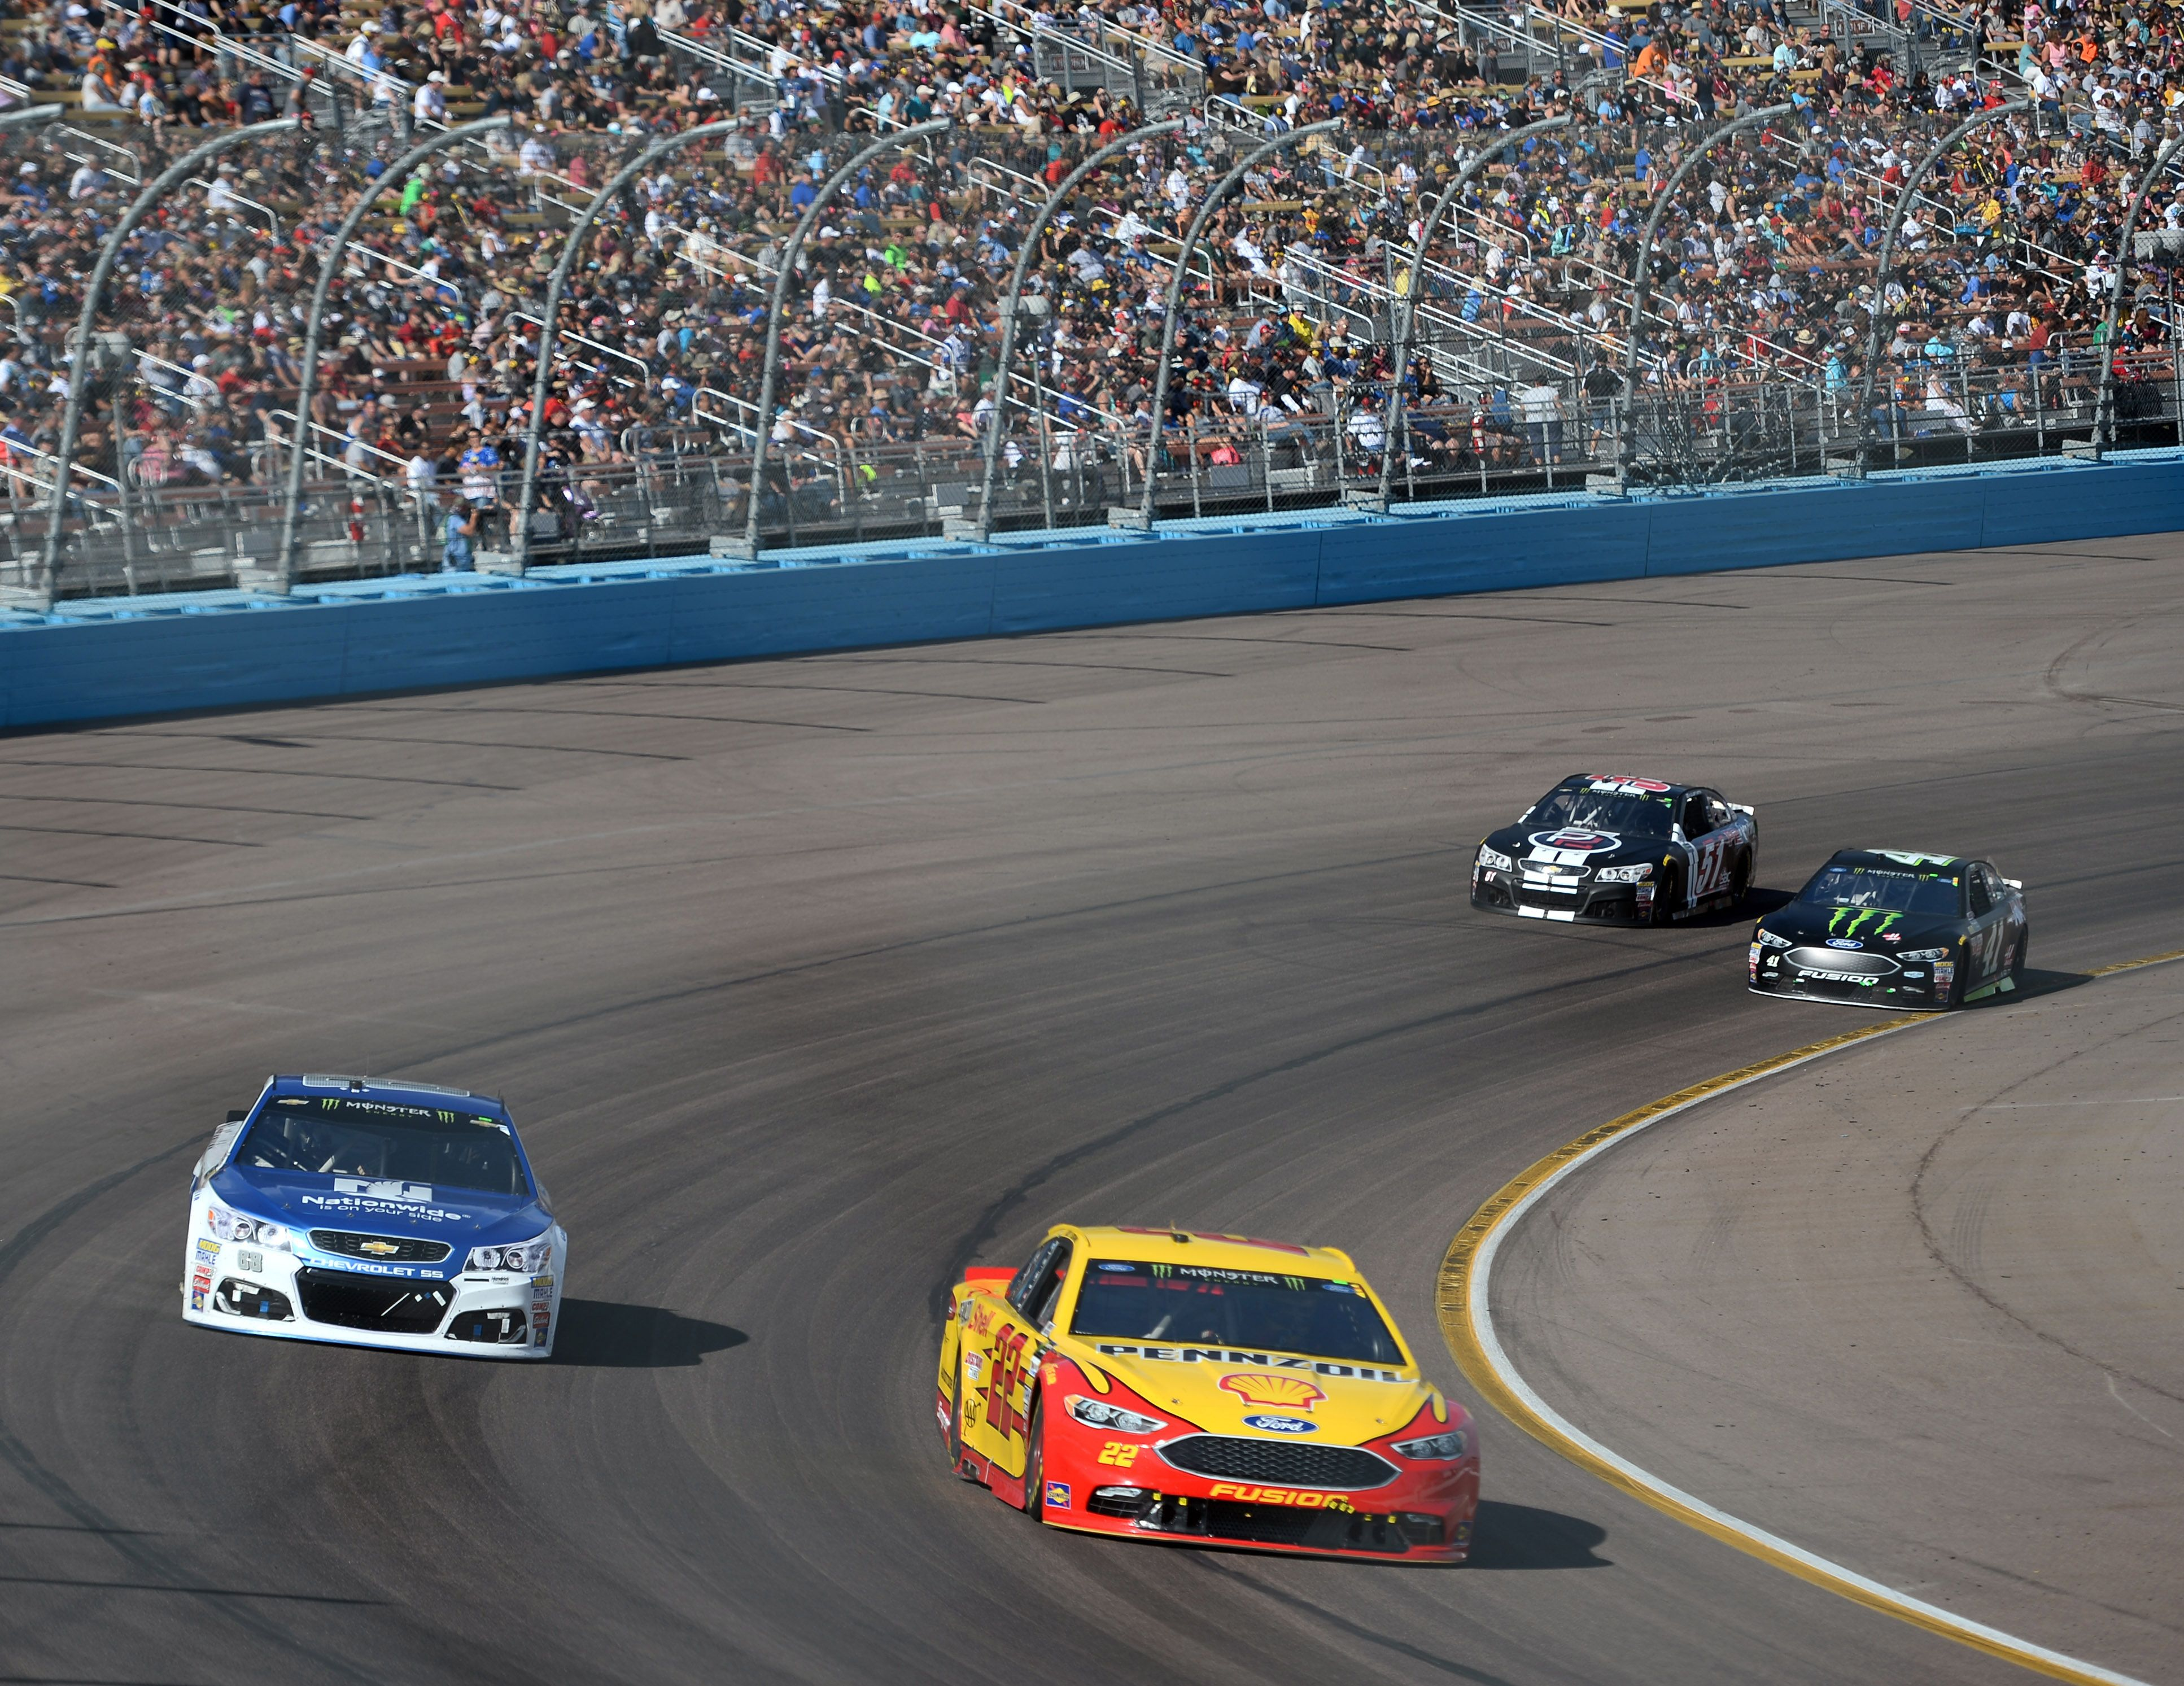 NASCAR racing at Phoenix's ISM Raceway could be dramatically ...